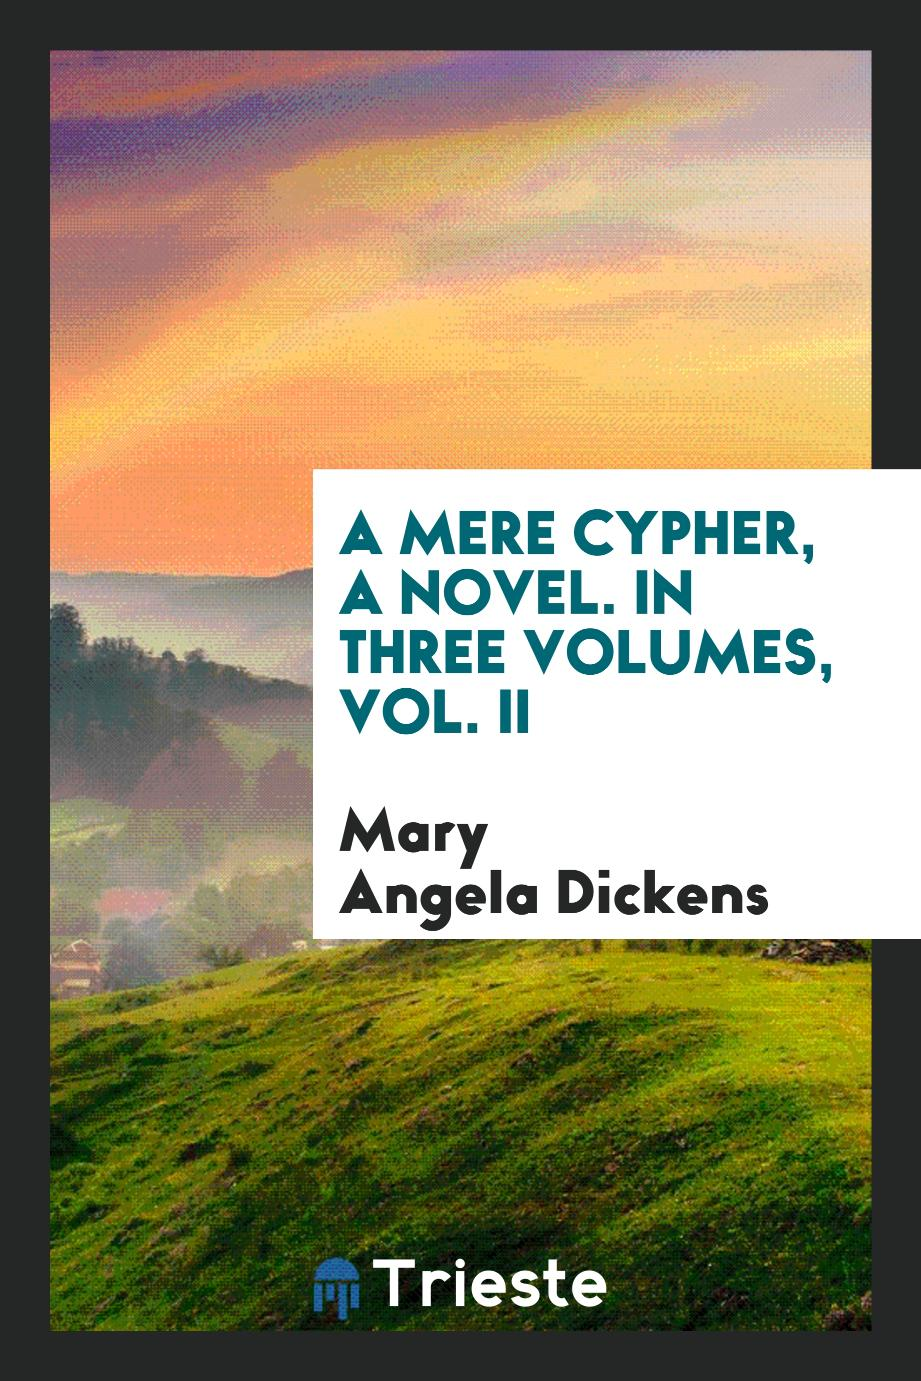 A Mere Cypher, a Novel. In Three Volumes, Vol. II